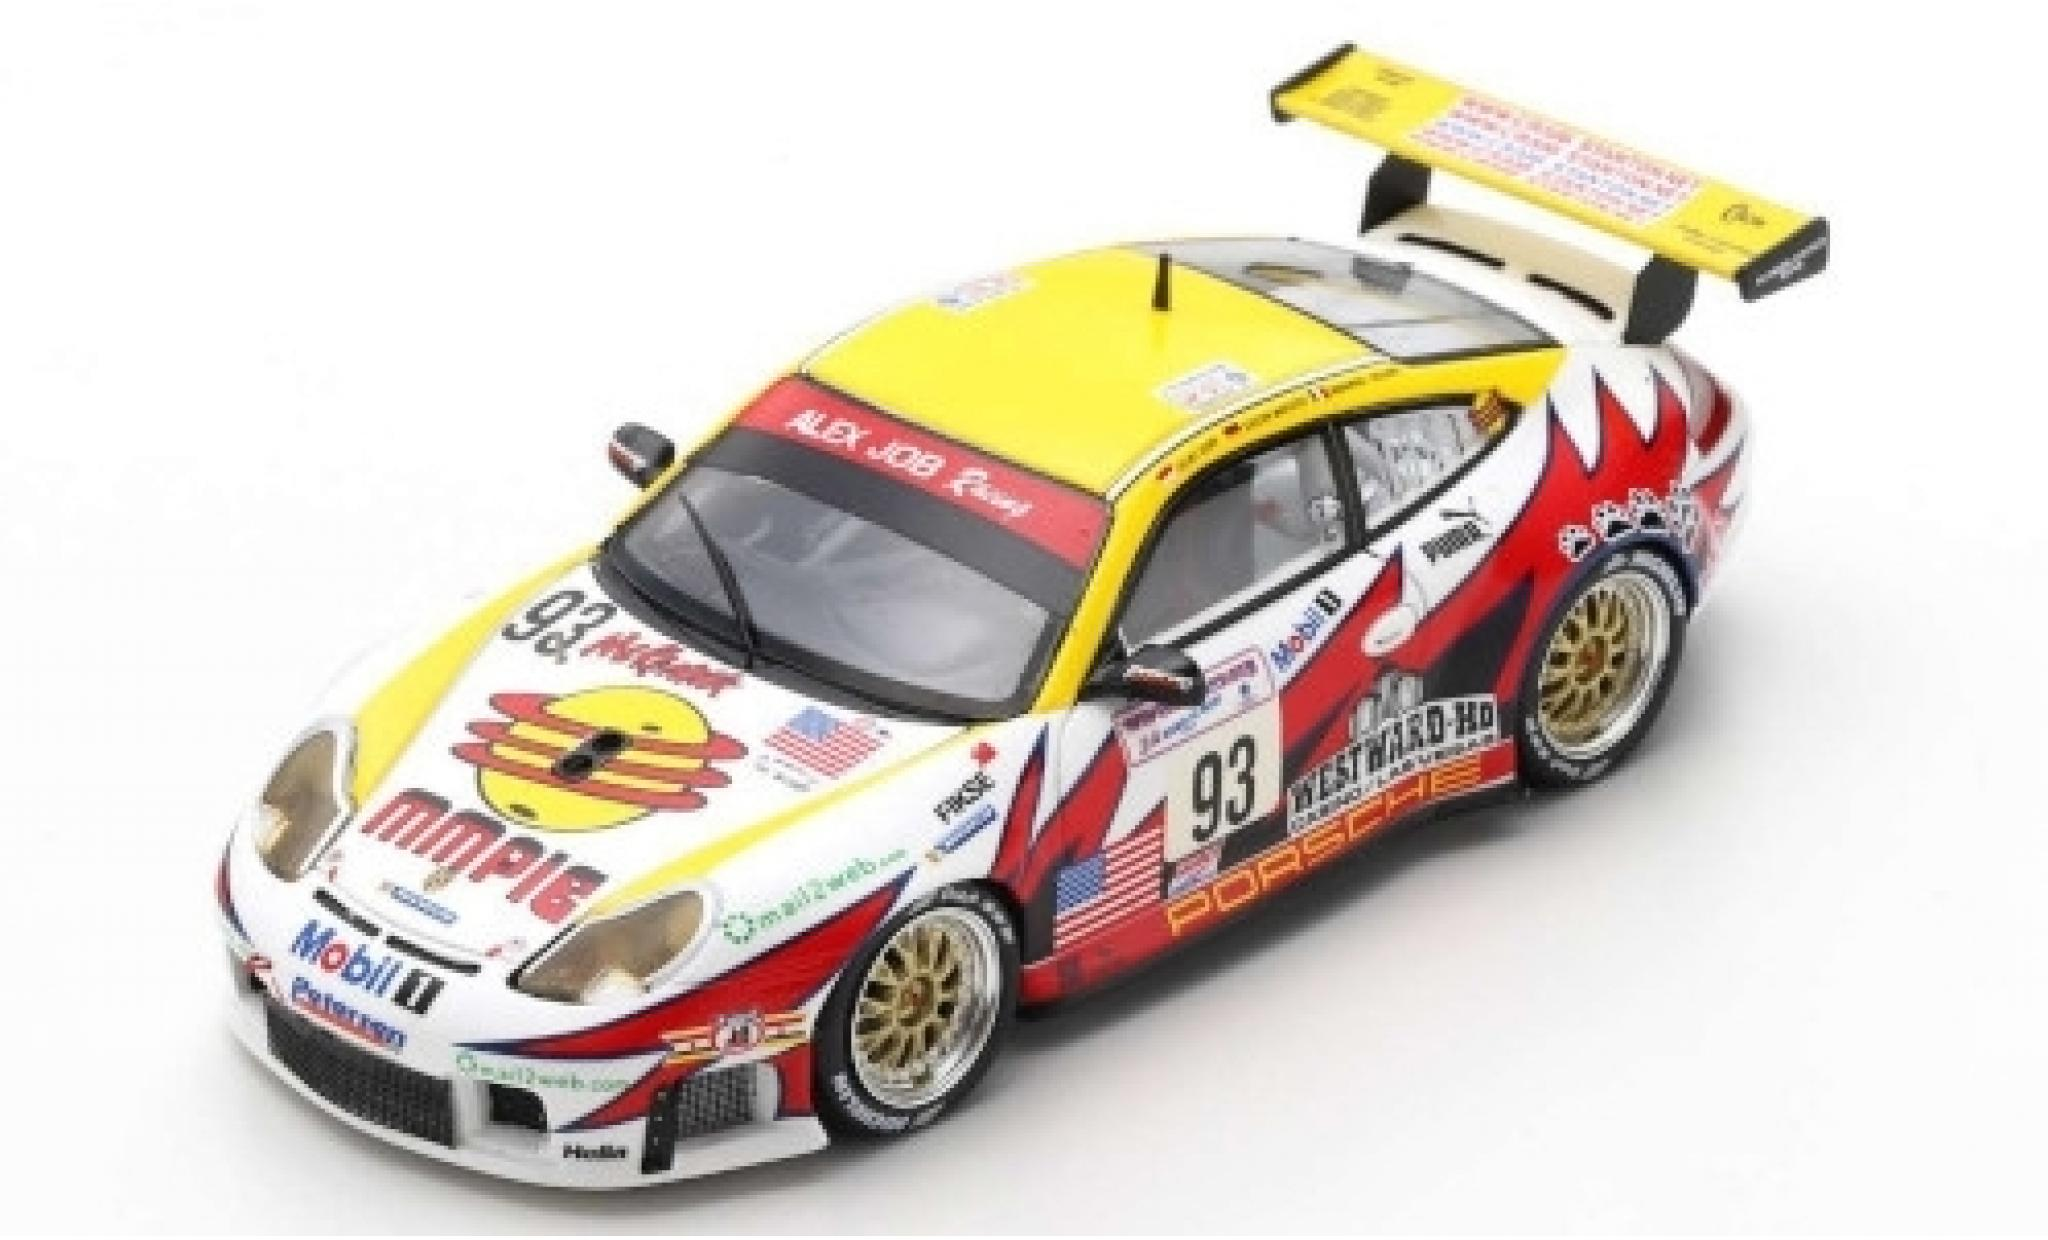 Porsche 996 GT3 RS 1/43 Spark 911  No.93 Alex Job Racing 24h Le Mans 2003 E.Collard/L.Luhr/S.Maassen